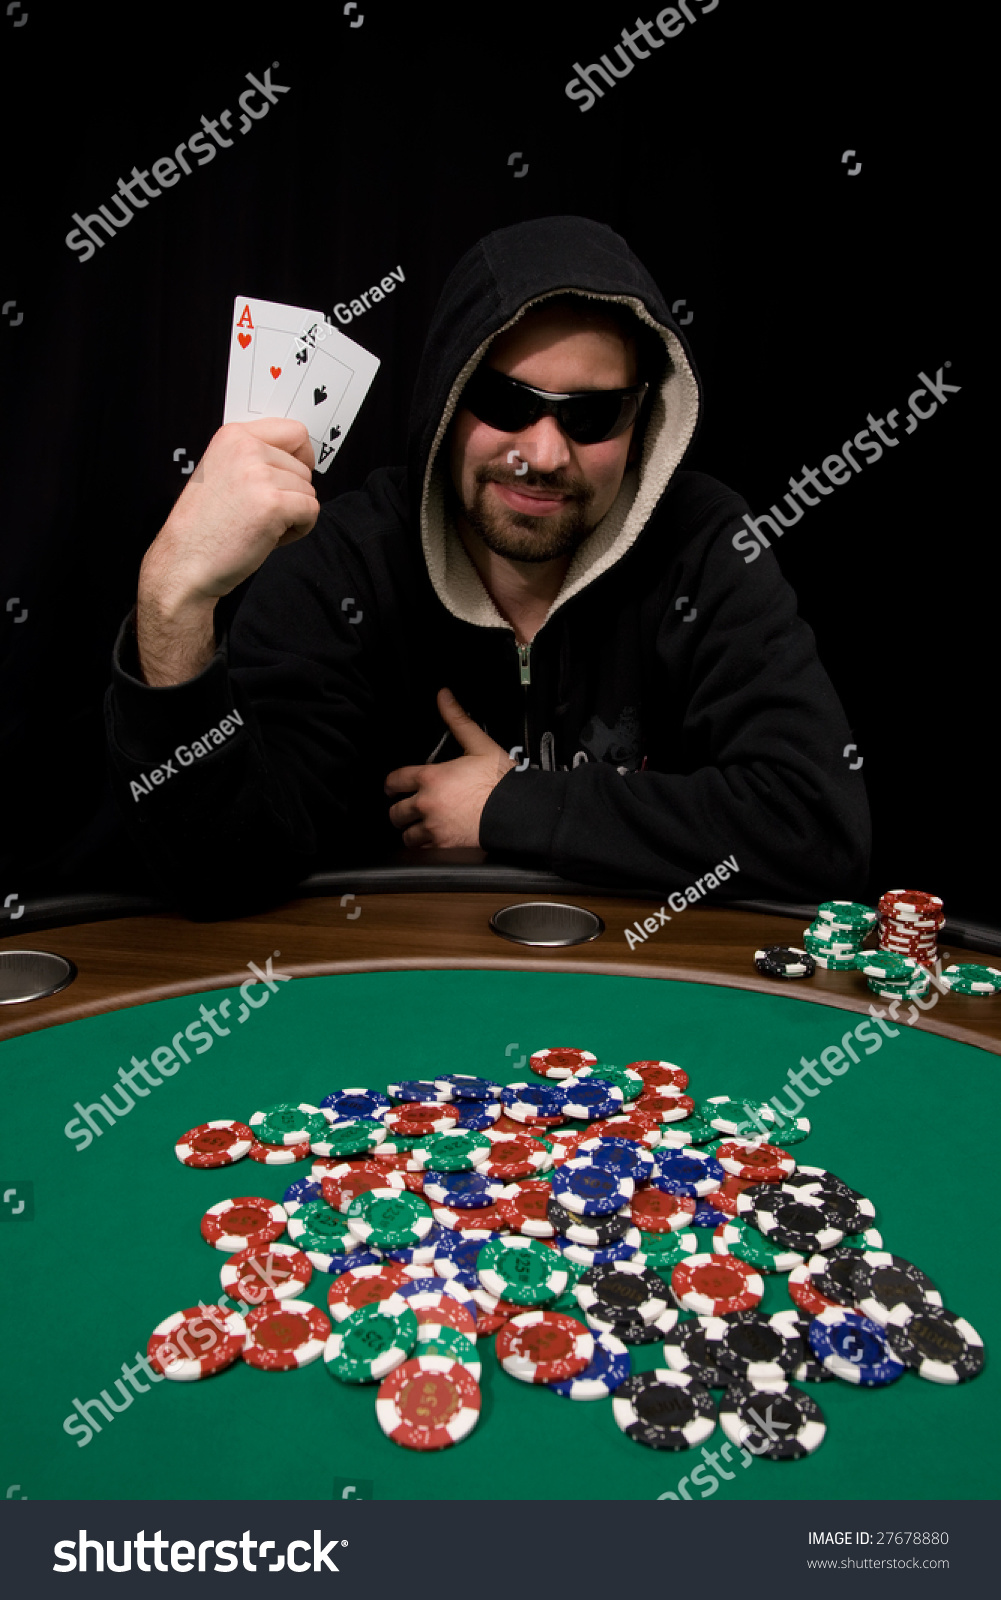 how to win at poker in a casino